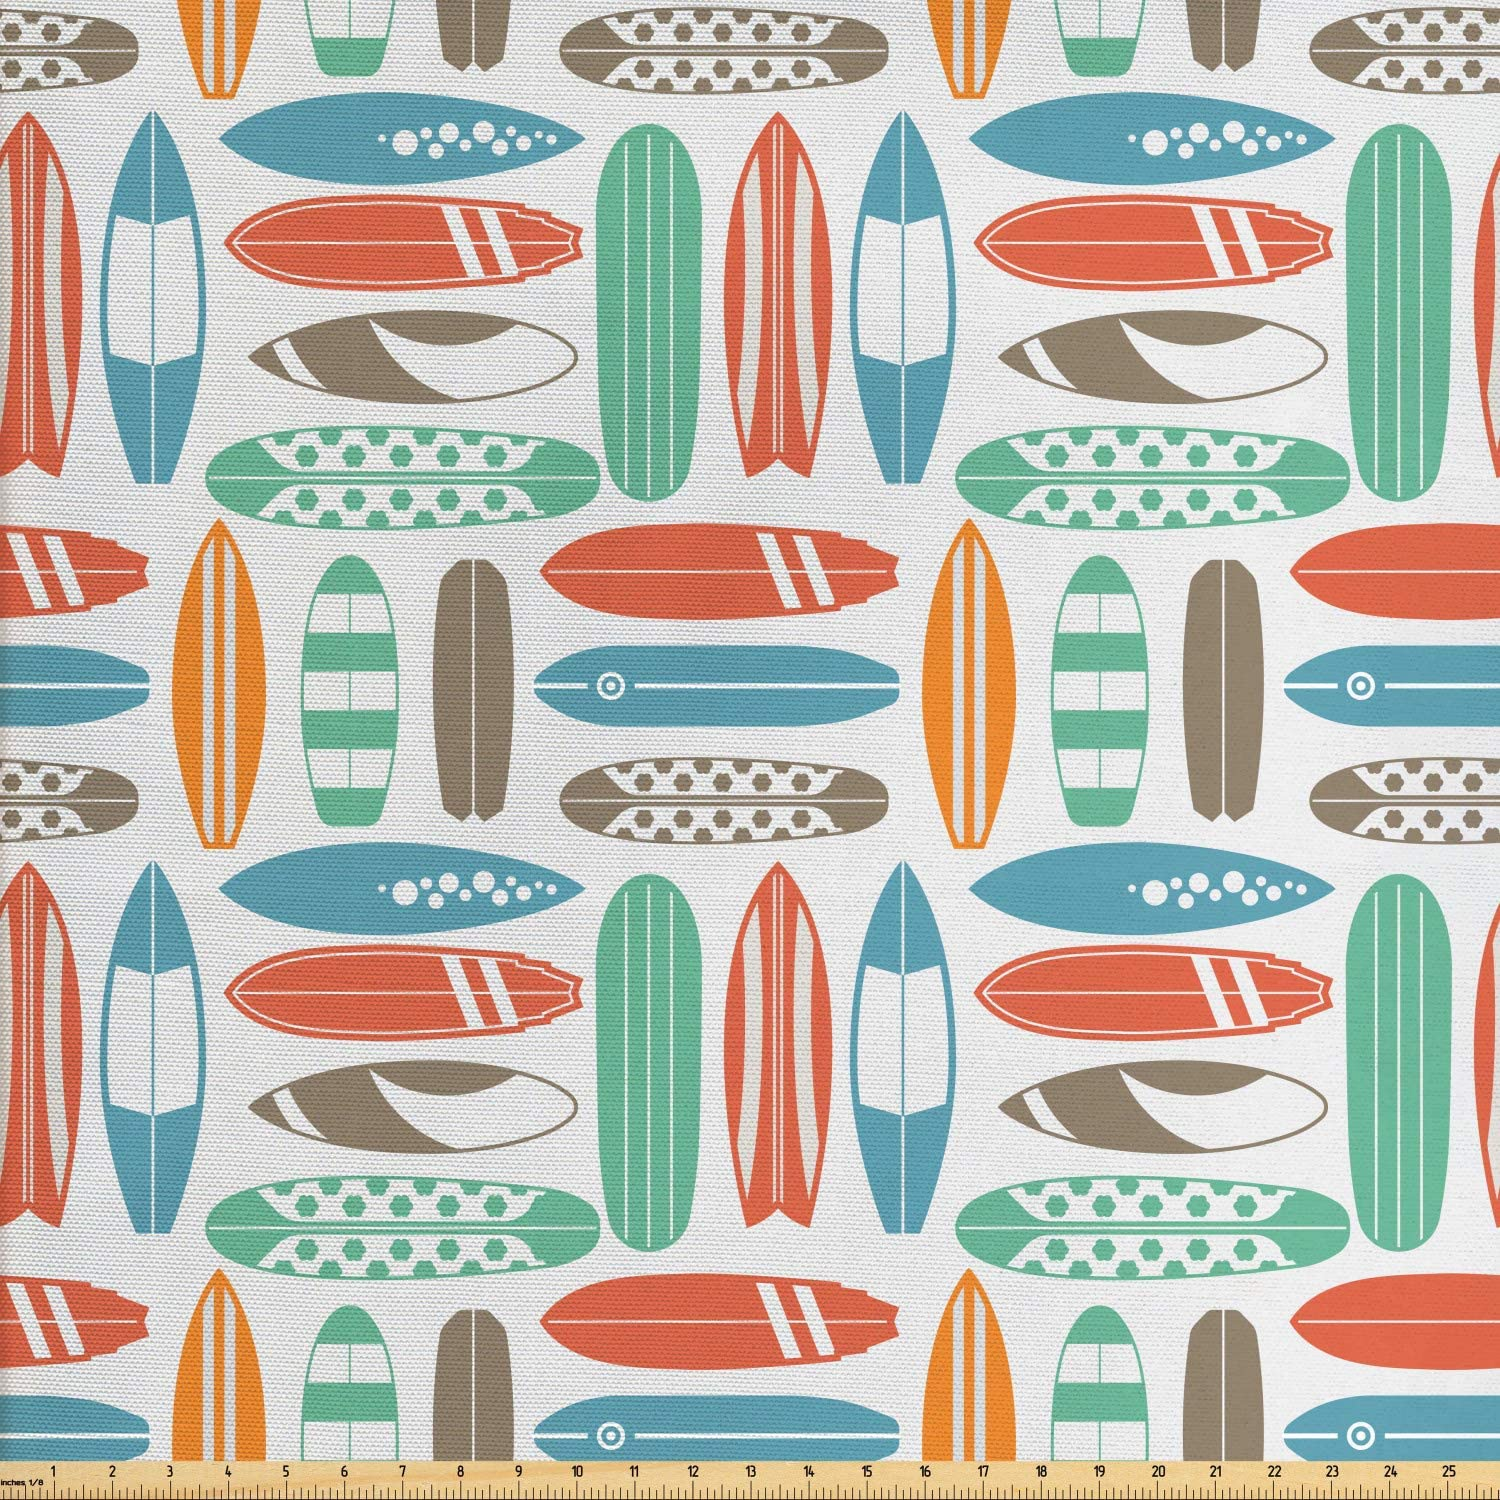 Ambesonne Surfboard Fabric by The Yard, Colorful Surfing Sea Pattern with Summer Travel Illustration in Retro Colors, Decorative Fabric for Upholstery and Home Accents, 3 Yards, Coral Orange